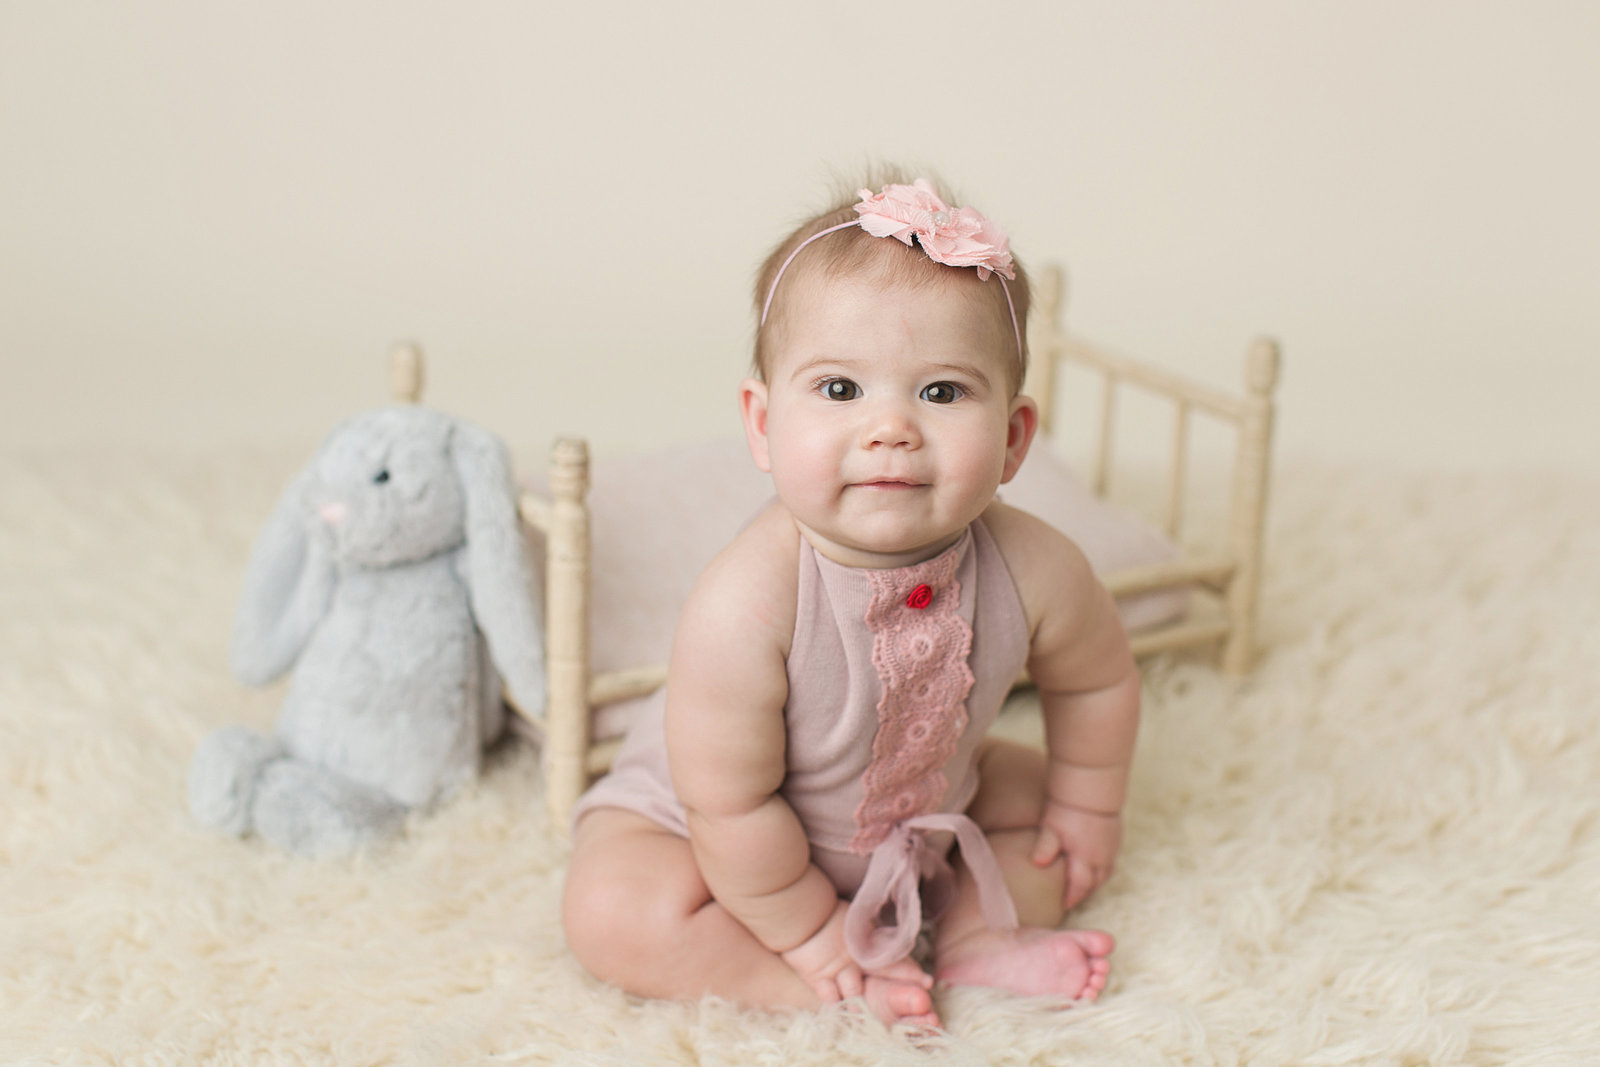 chubby baby sits with stuffed toy